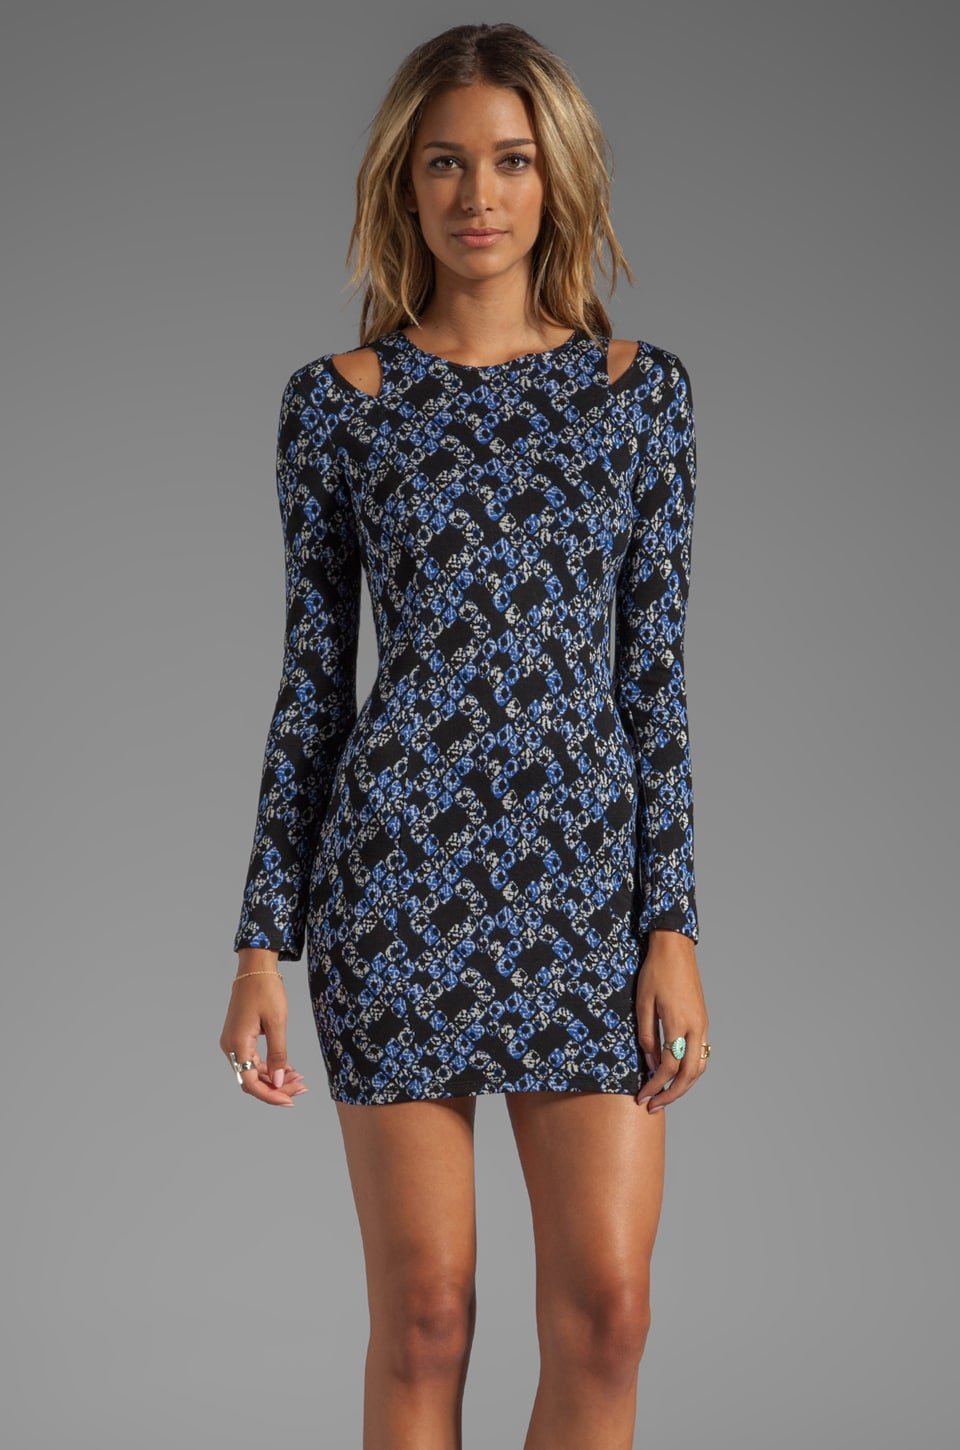 Lucca Couture Long Sleeve Dress With Cut Out in Blue Print